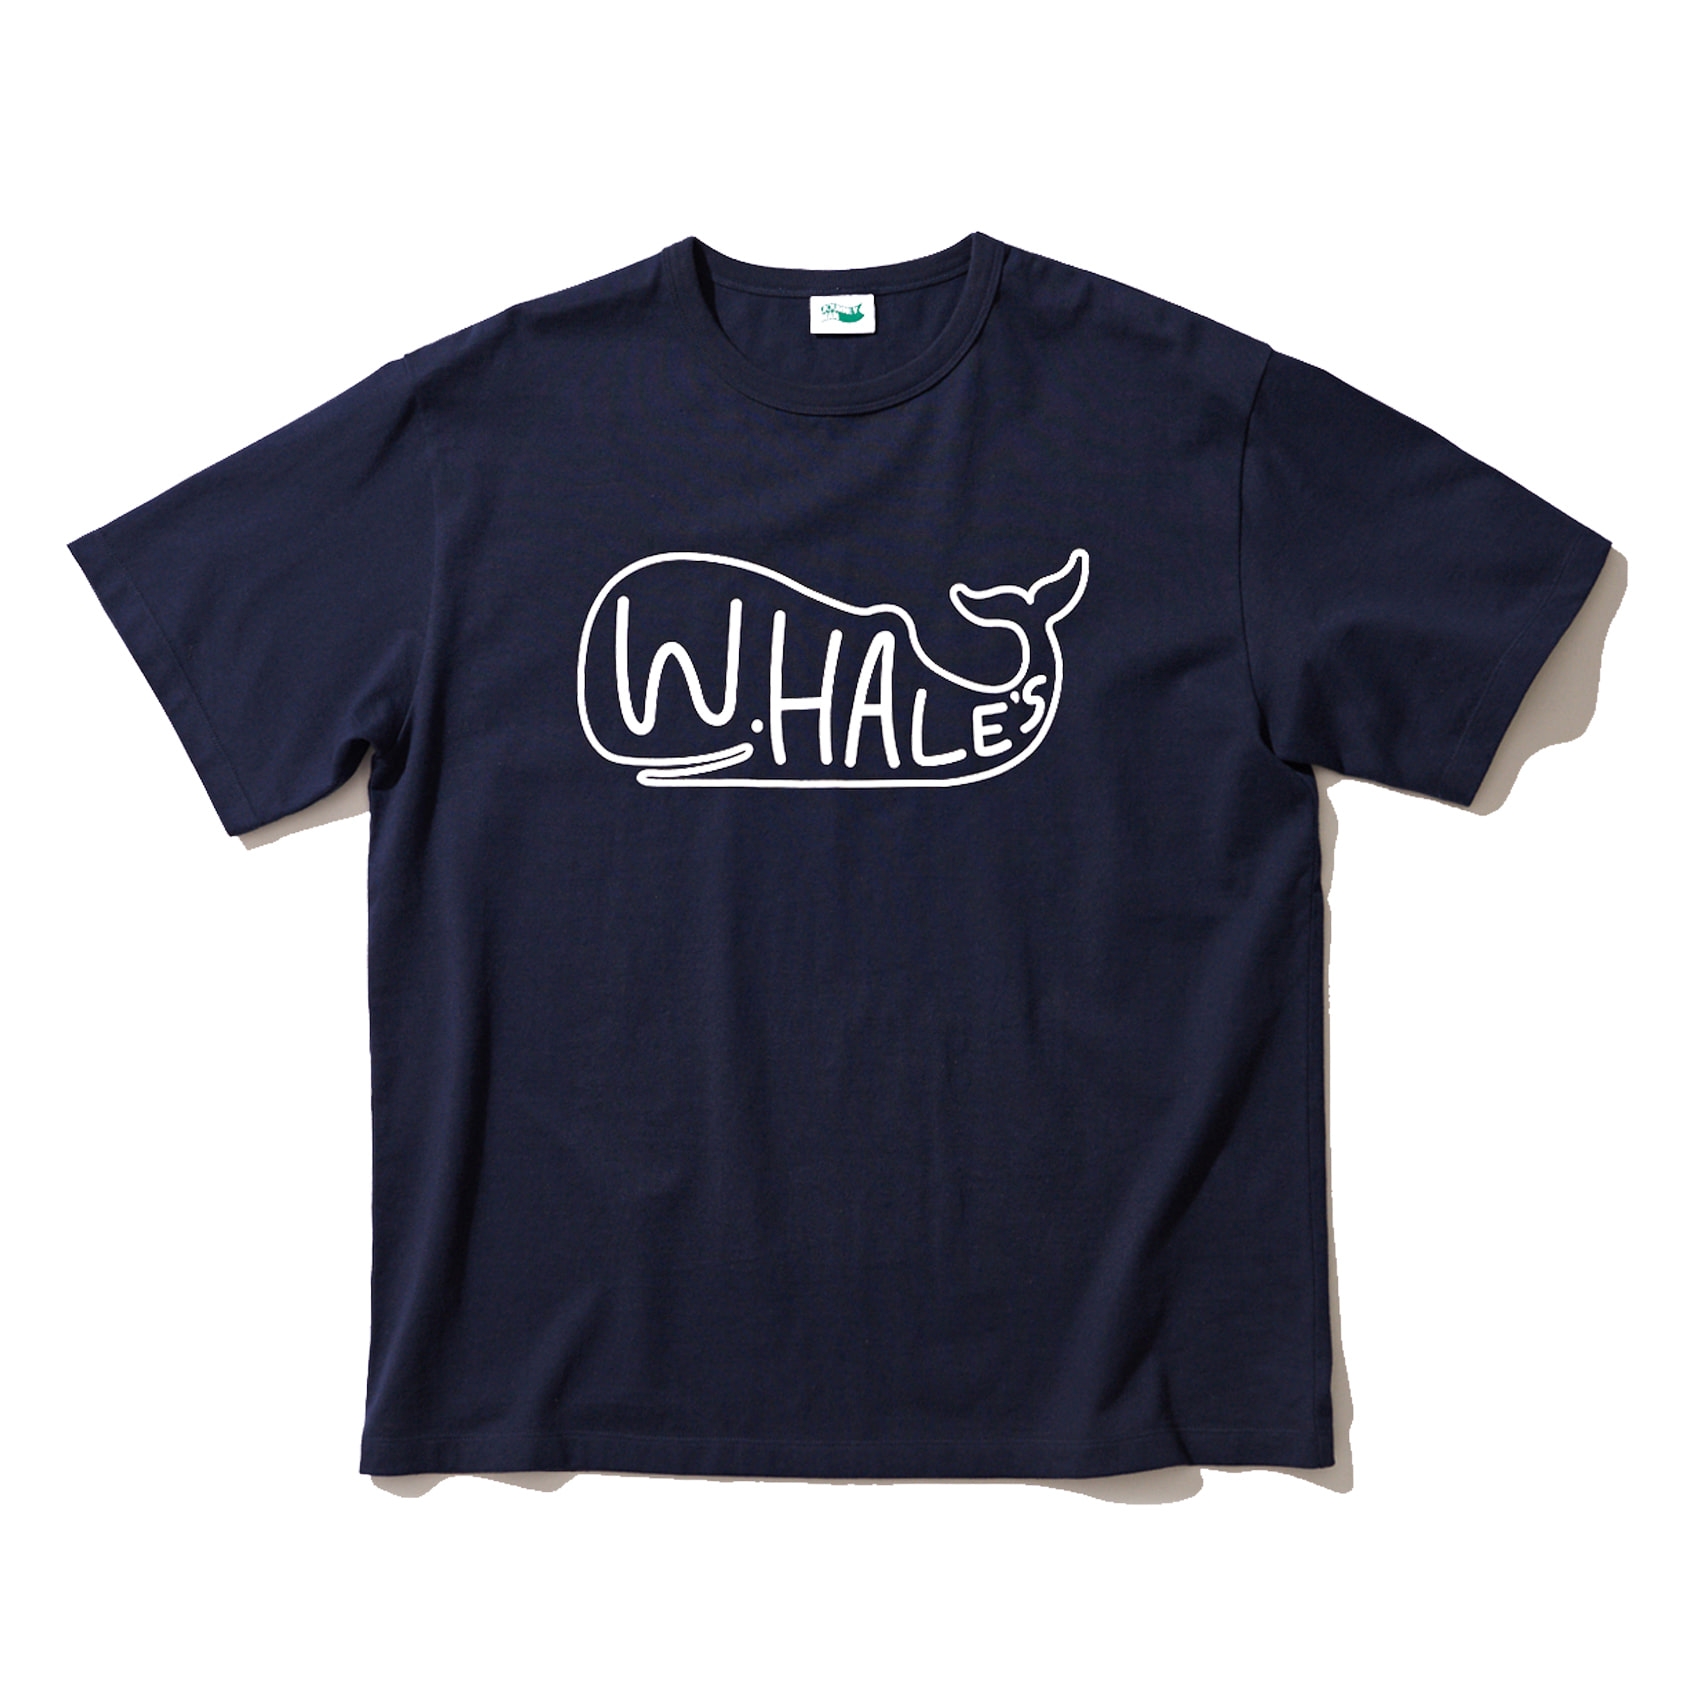 WHALES BIG LOGO T SHIRT - NAVY